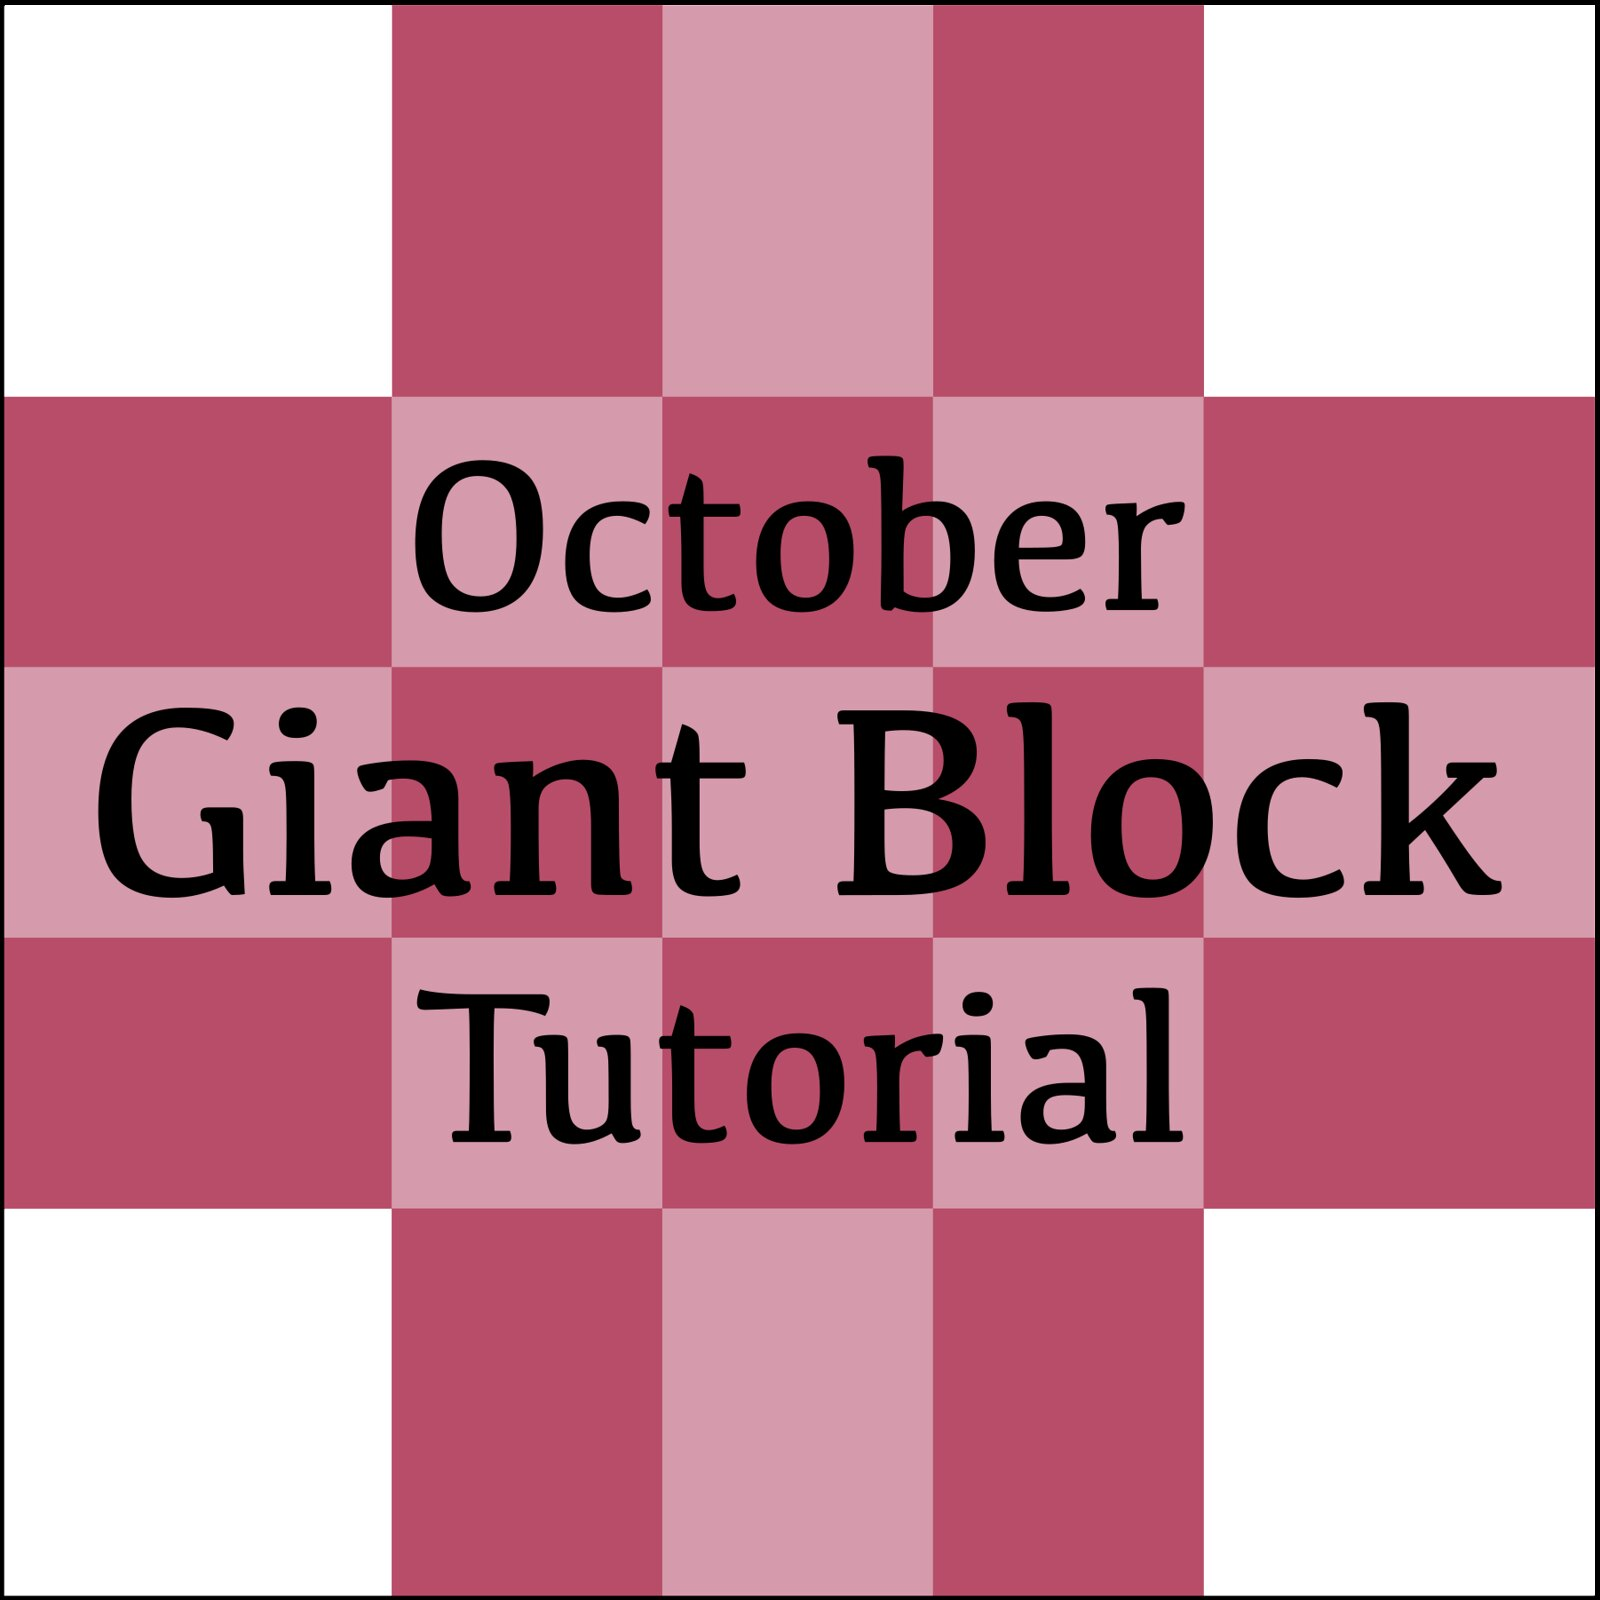 October Giant Block Tutorial